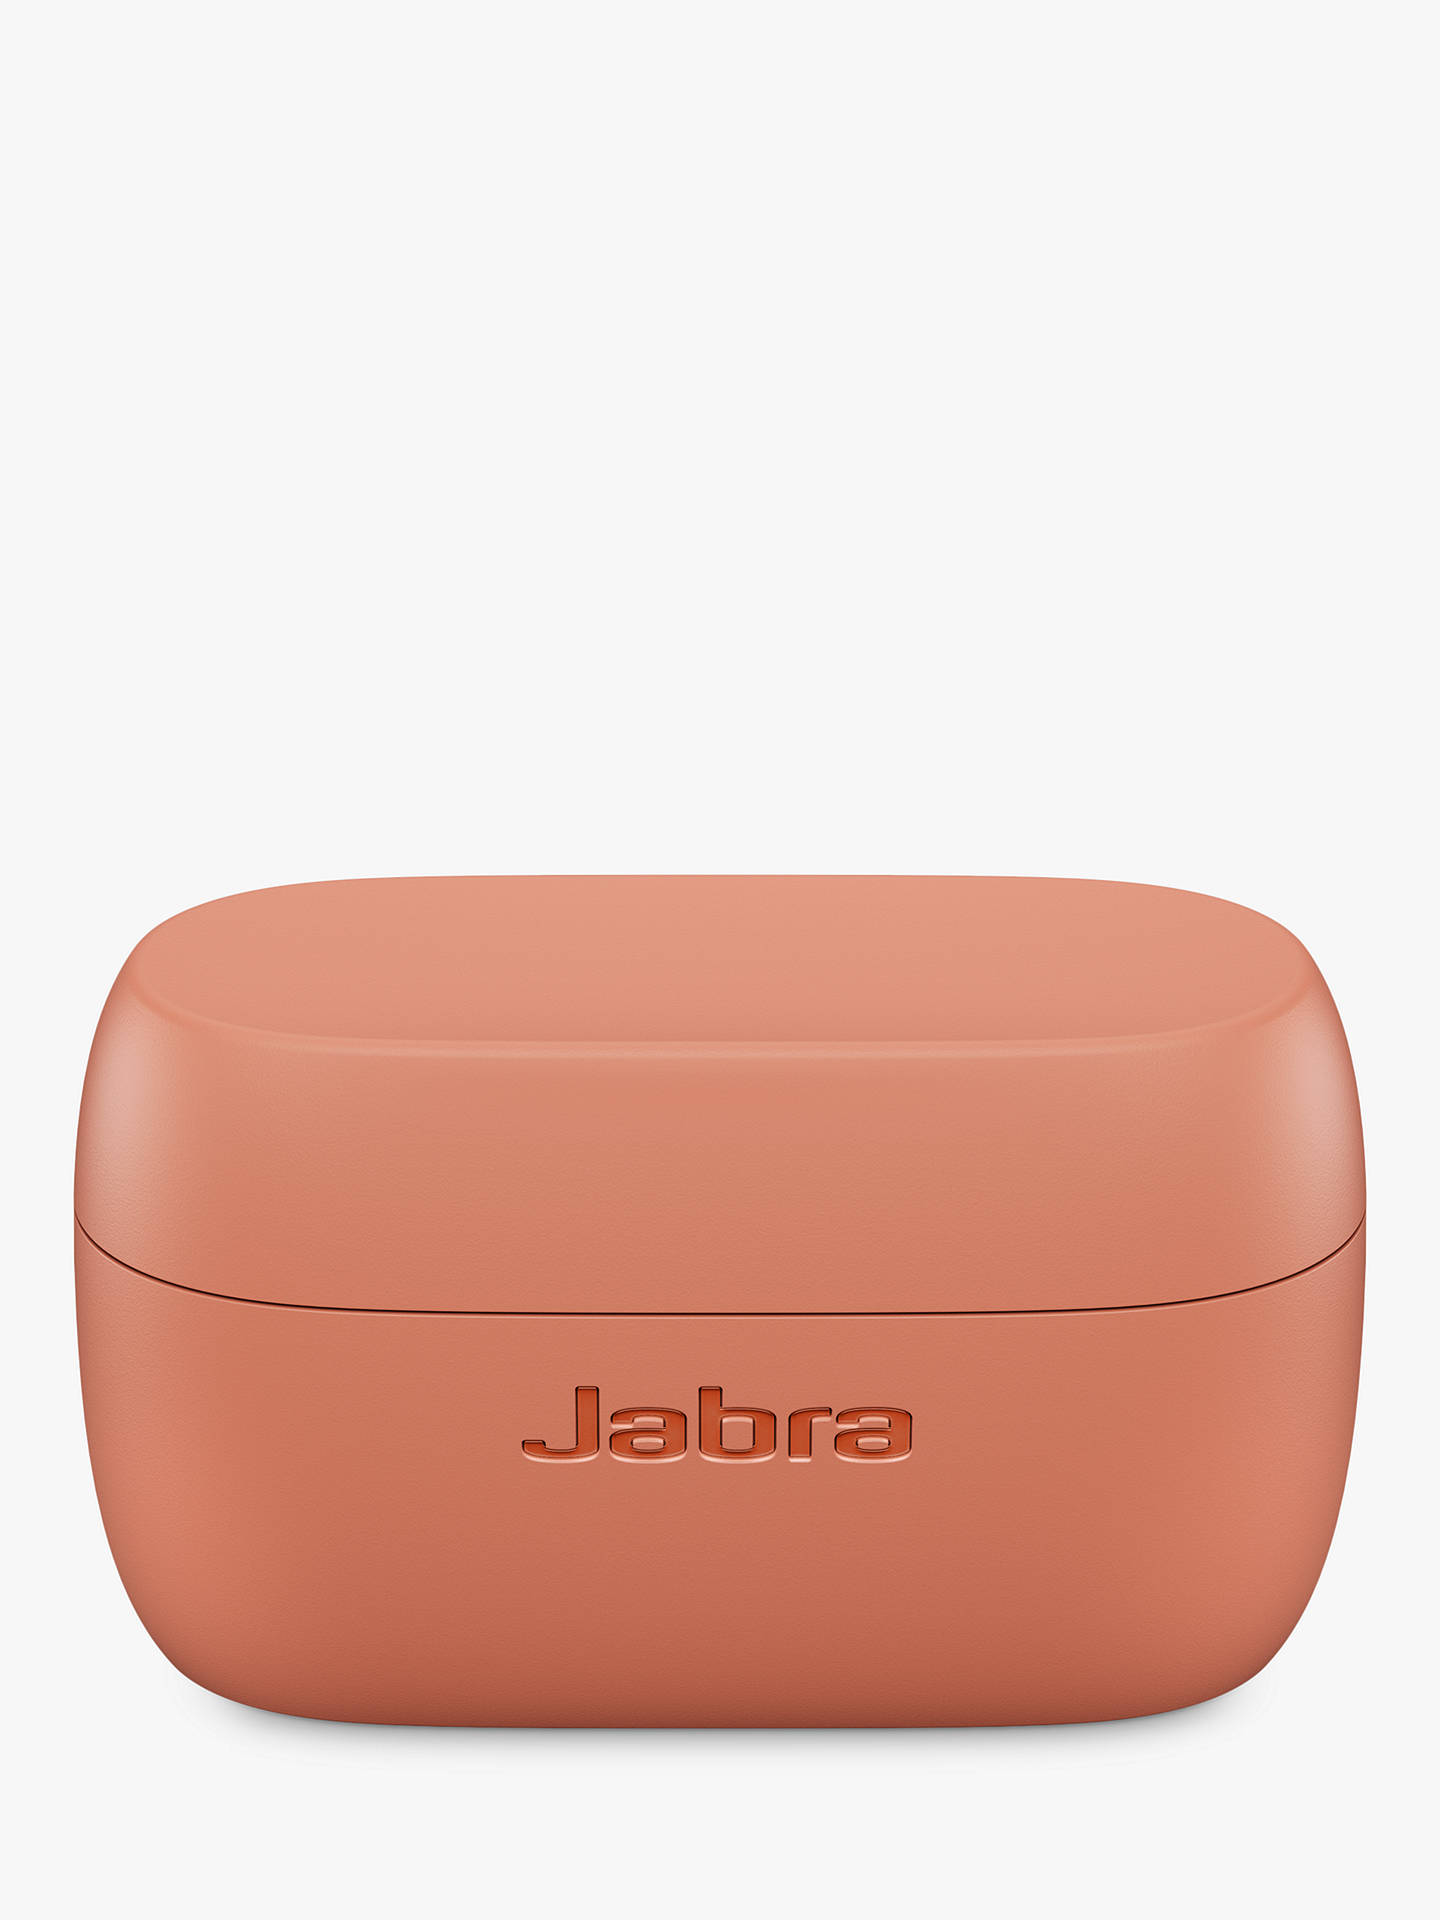 Buy Jabra Elite Active 75t True Wireless Bluetooth Active Noise Cancelling Sweat & Weather-Resistant In-Ear Headphones with Mic/Remote, Sienna Online at johnlewis.com